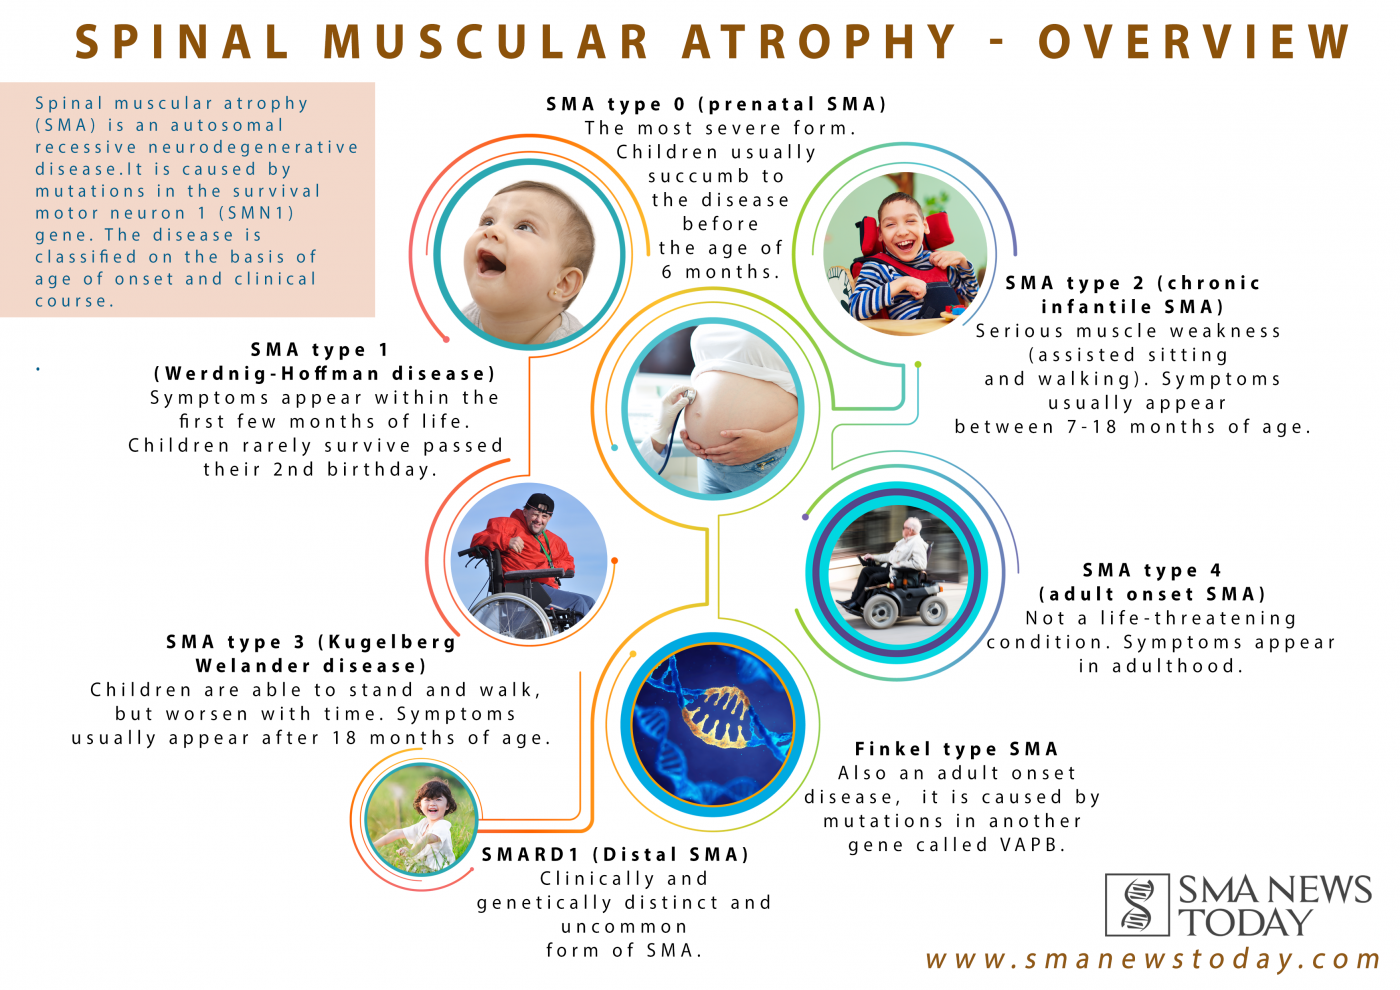 A Look At The Different Types Of Sma Spinal Muscular Atrophy Spinal Muscle Atrophy